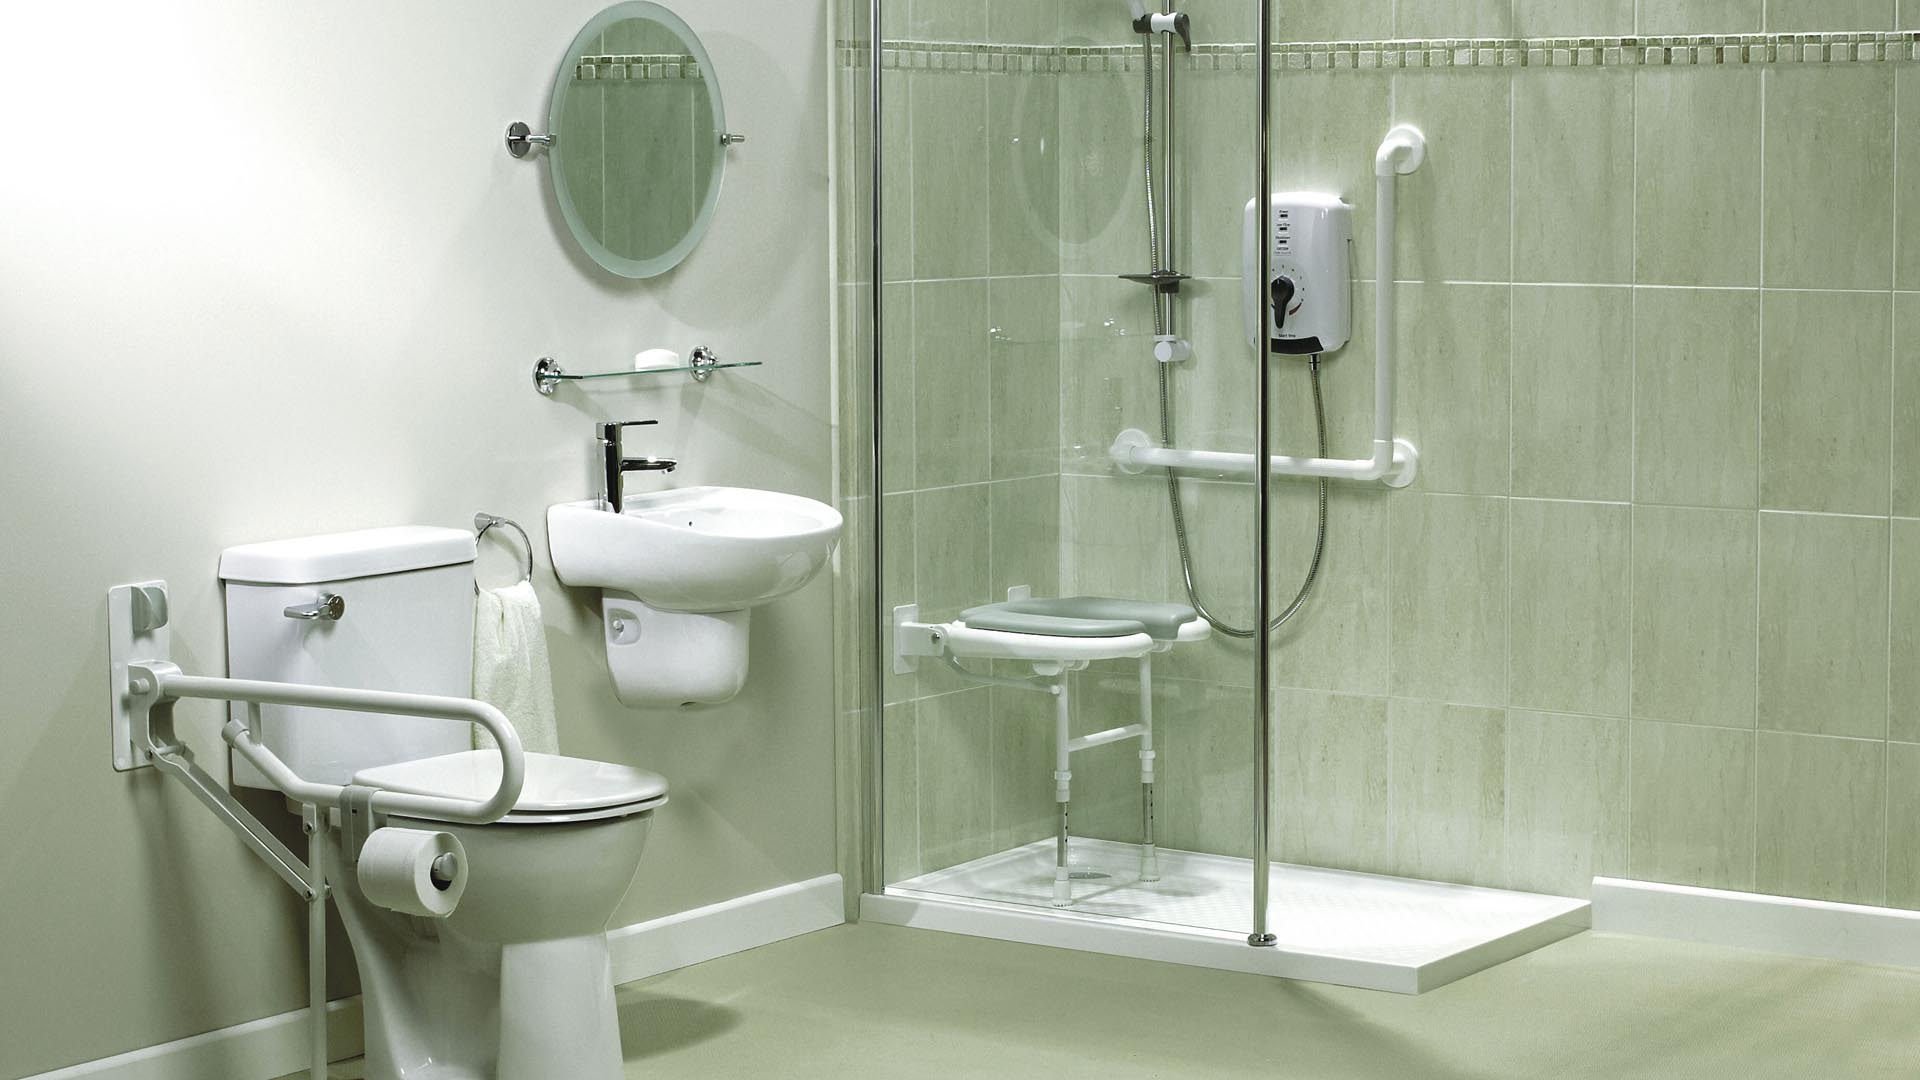 Disabled Bathroom Products Woodhouse Sturnham Ltd Plumbing Merchants In Peterborough